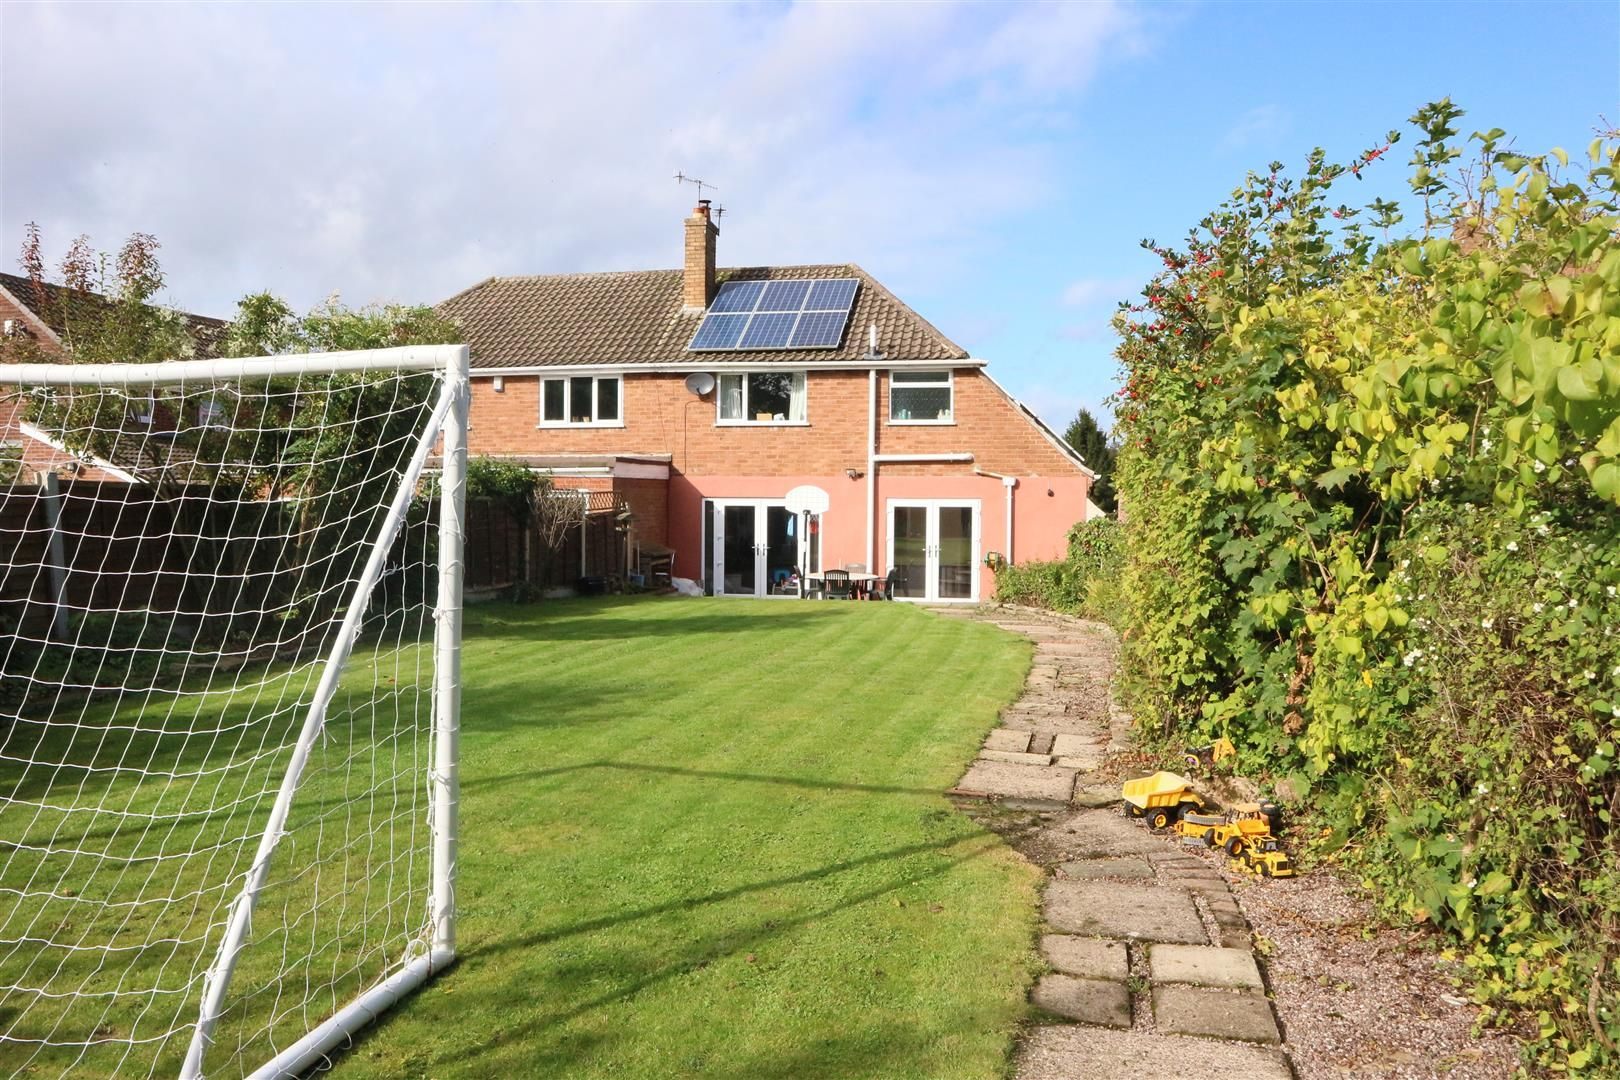 3 bed semi-detached for sale in Pedmore 12